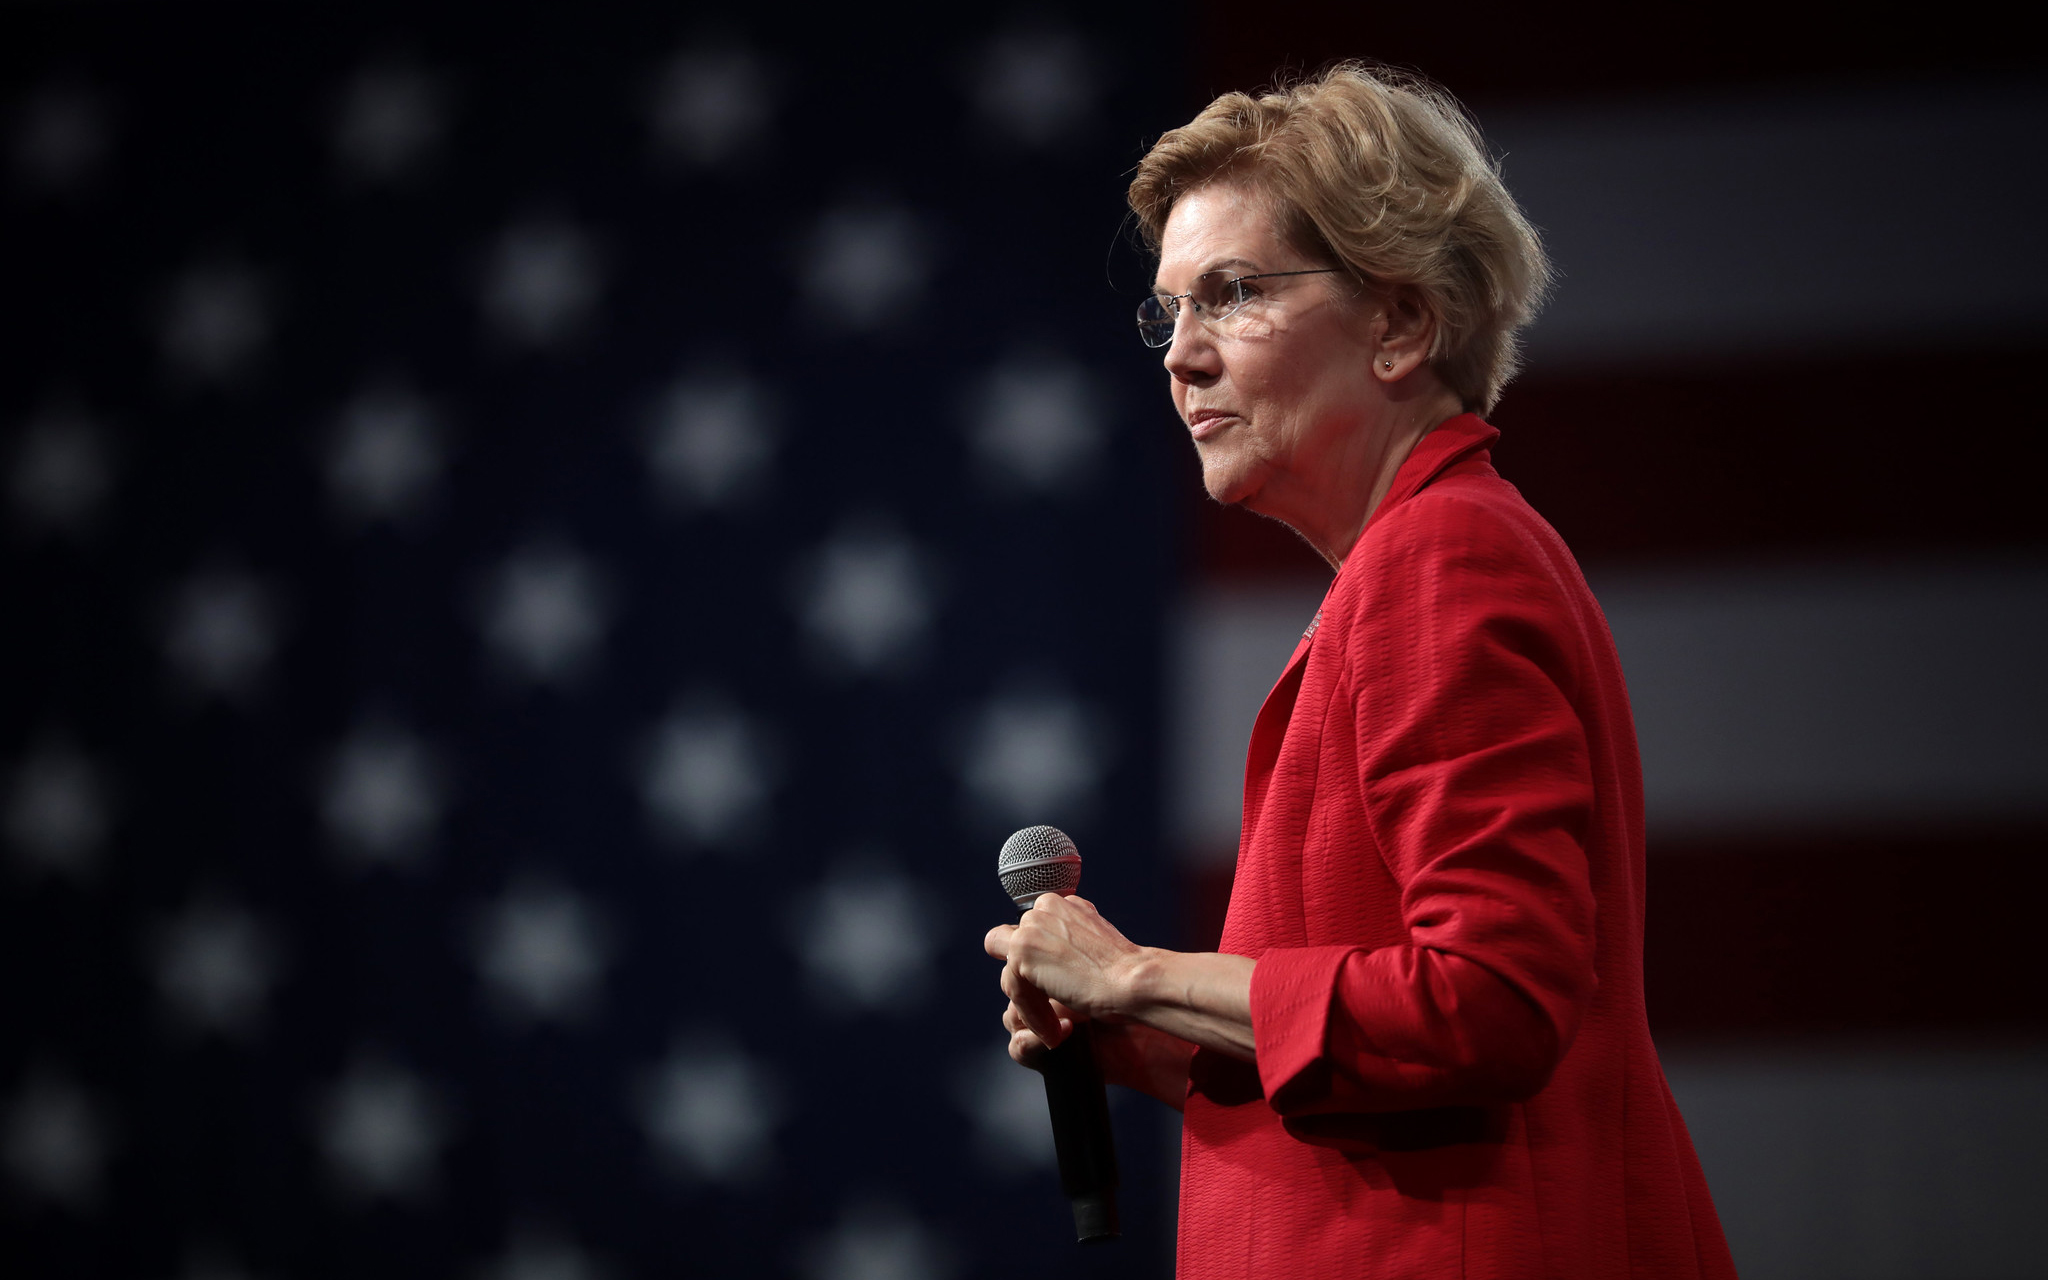 Elizabeth Warren standing on stage with a microphone, wearing a red blazer and an American flag in the background. Her expression is neutral.